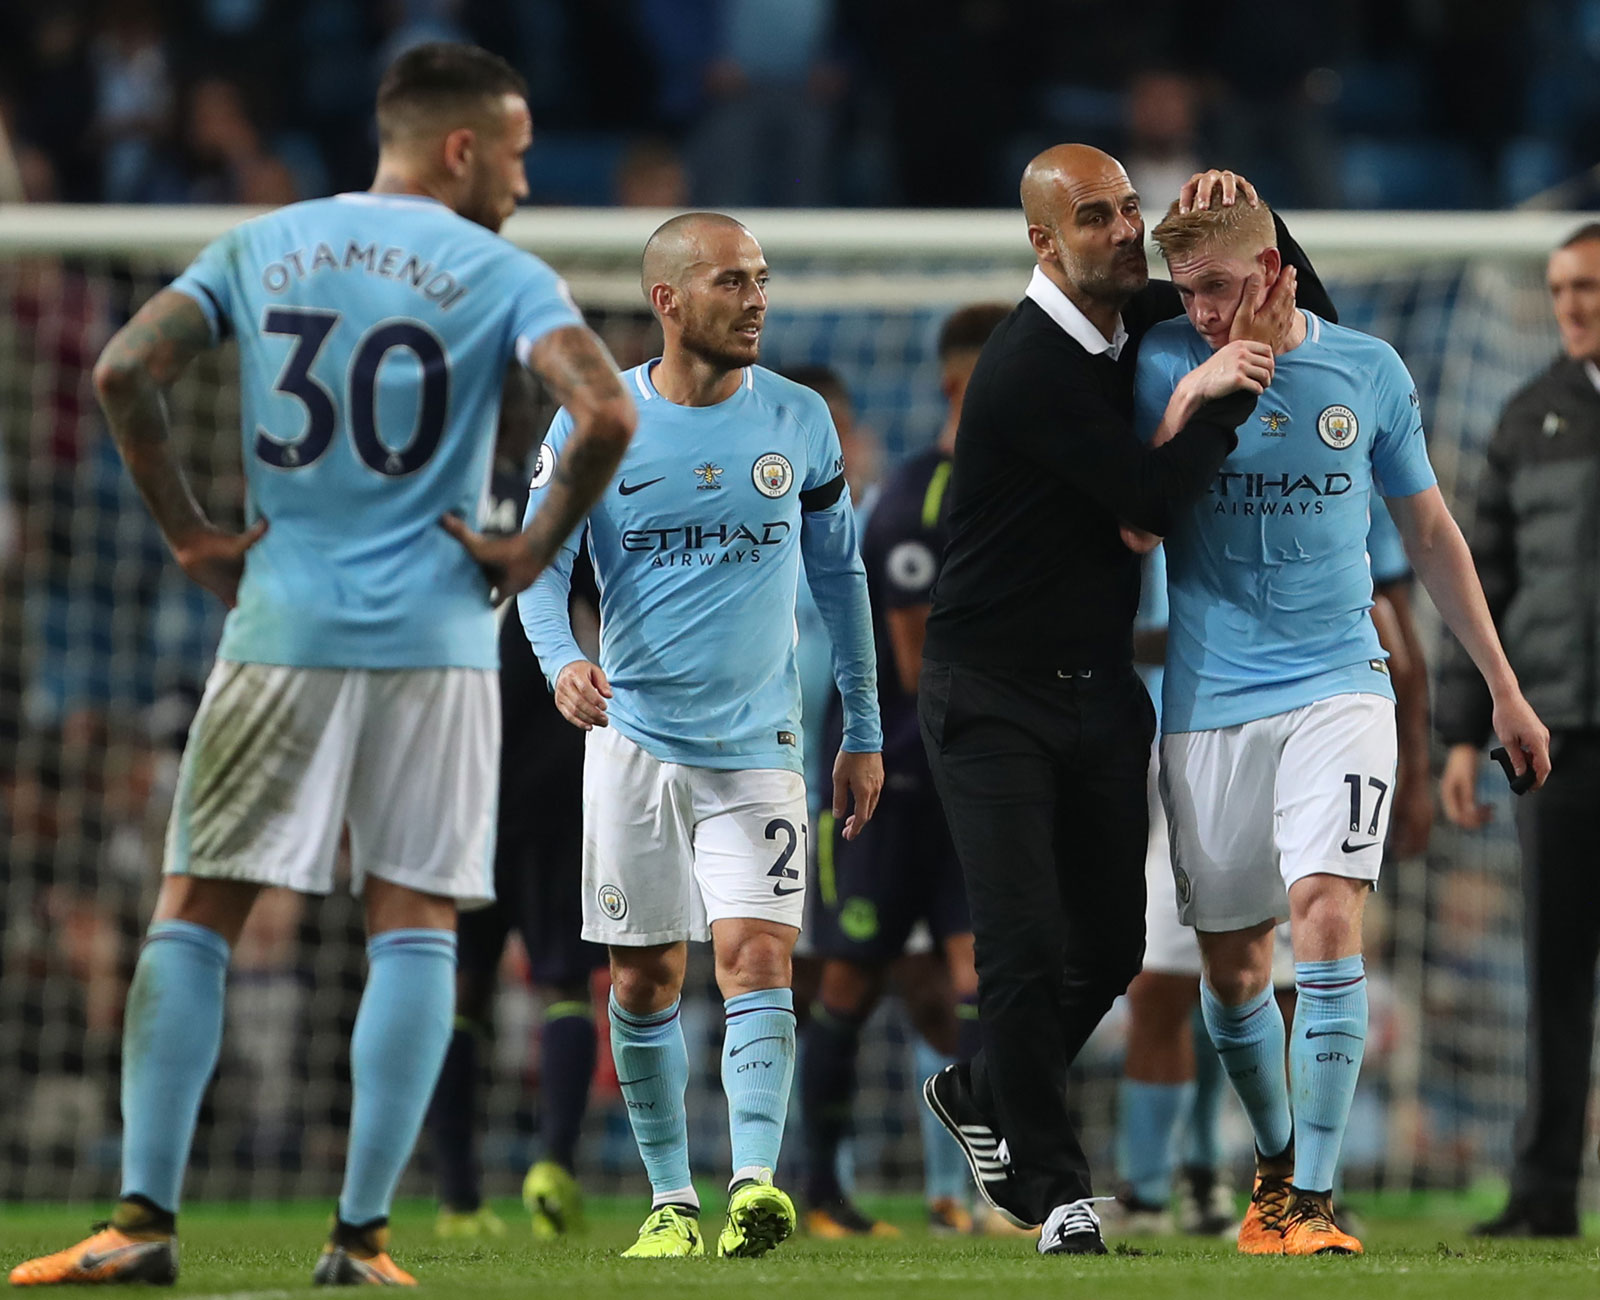 Premier League In Focus - Manchester City vs Burnley Preview